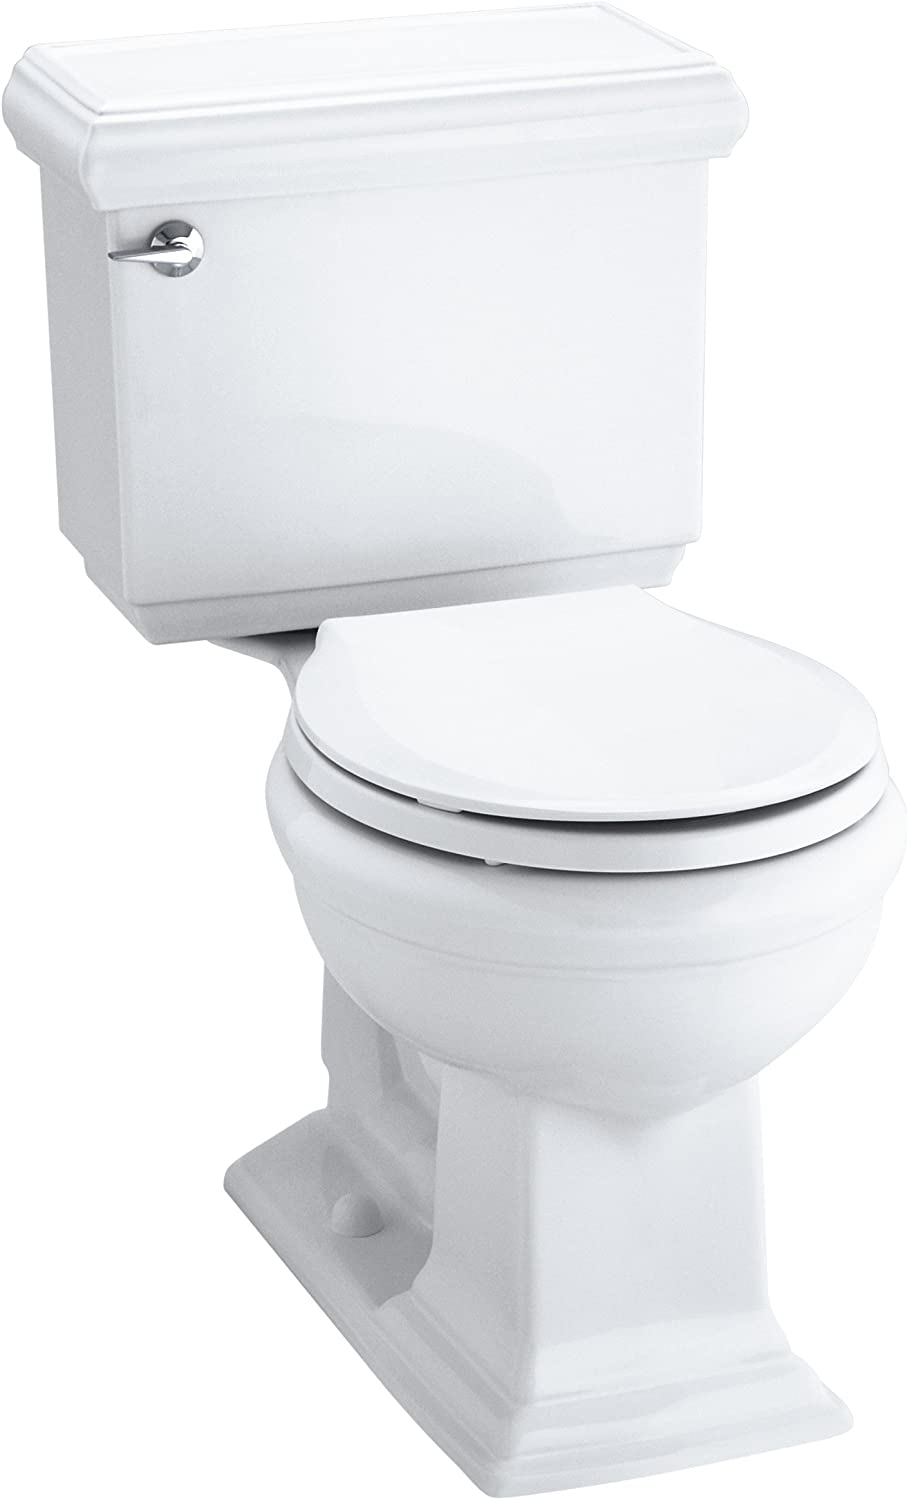 KOHLER 3986-U-0 Memoirs Classic Comfort Height Two-Piece Round-Front 1.28 Gpf Toilet with Aquapiston Flush Technology, Insuliner Tank Liner and Left-Hand Trip Lever, White